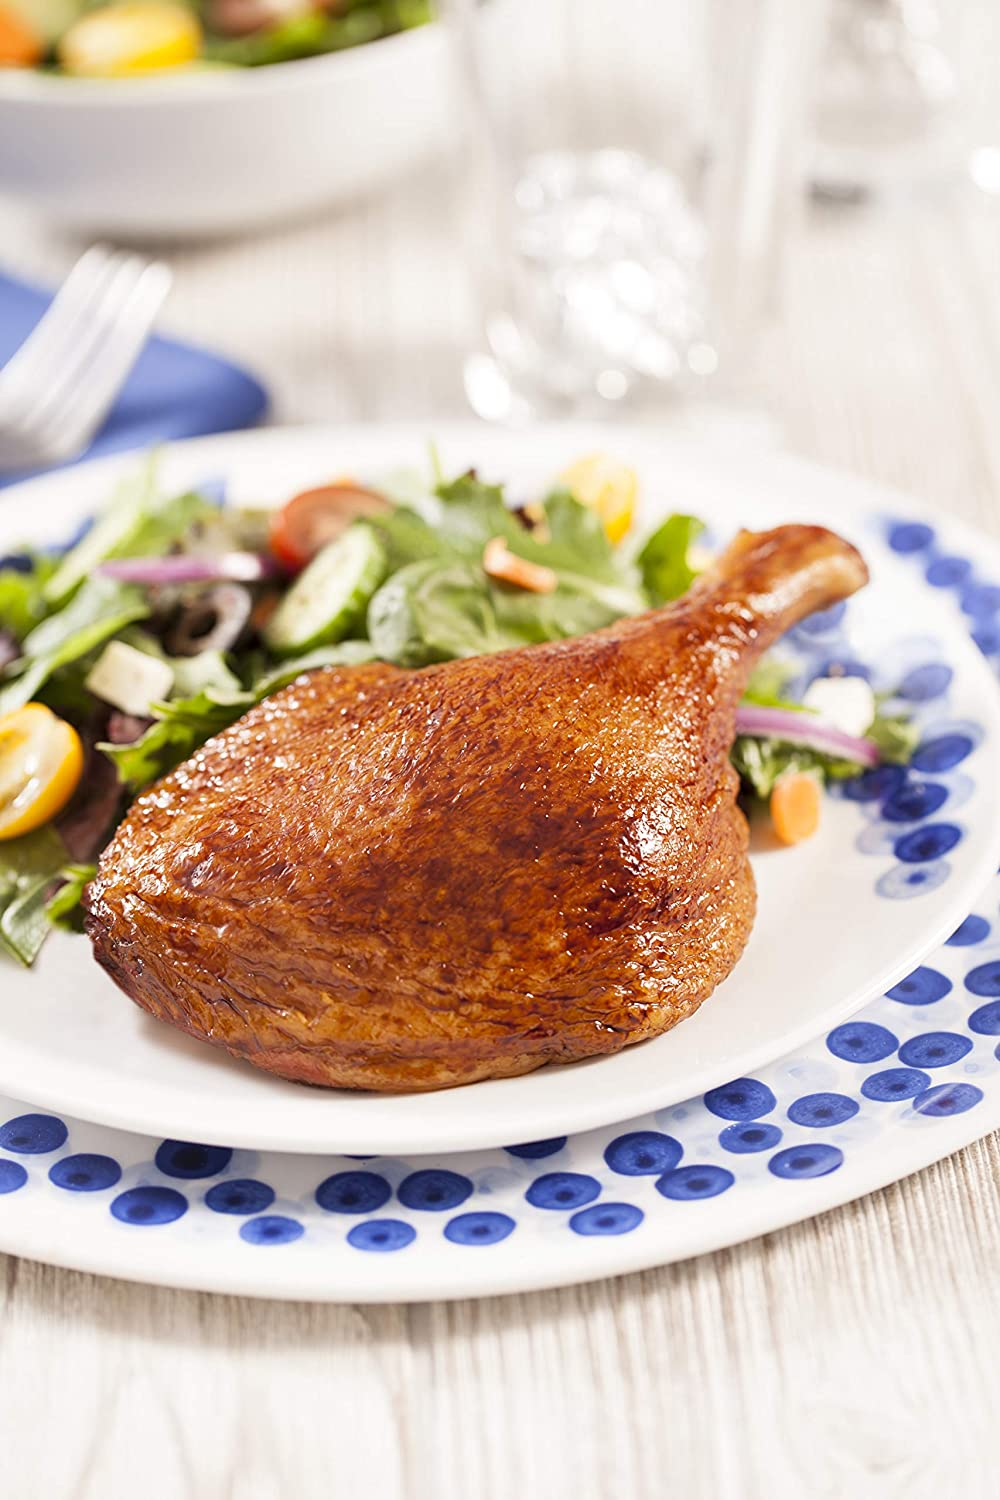 Echelon Foods Roasted Duck Legs Fully Cooked - Easy to Prepare for Any Occasion